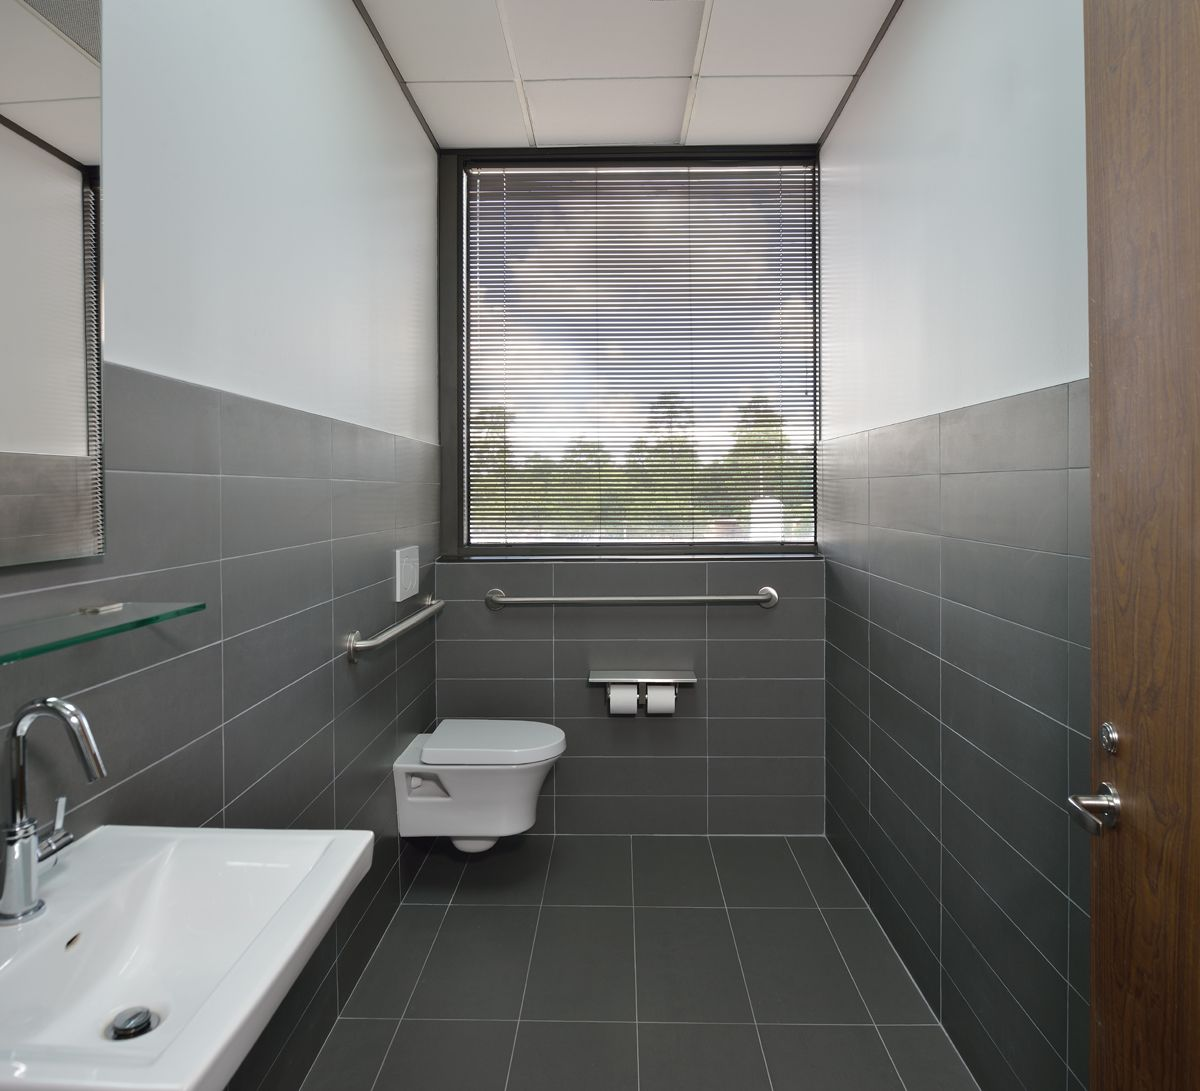 Bathroom for our clients outpatient medical office designed by wendt design group llc www